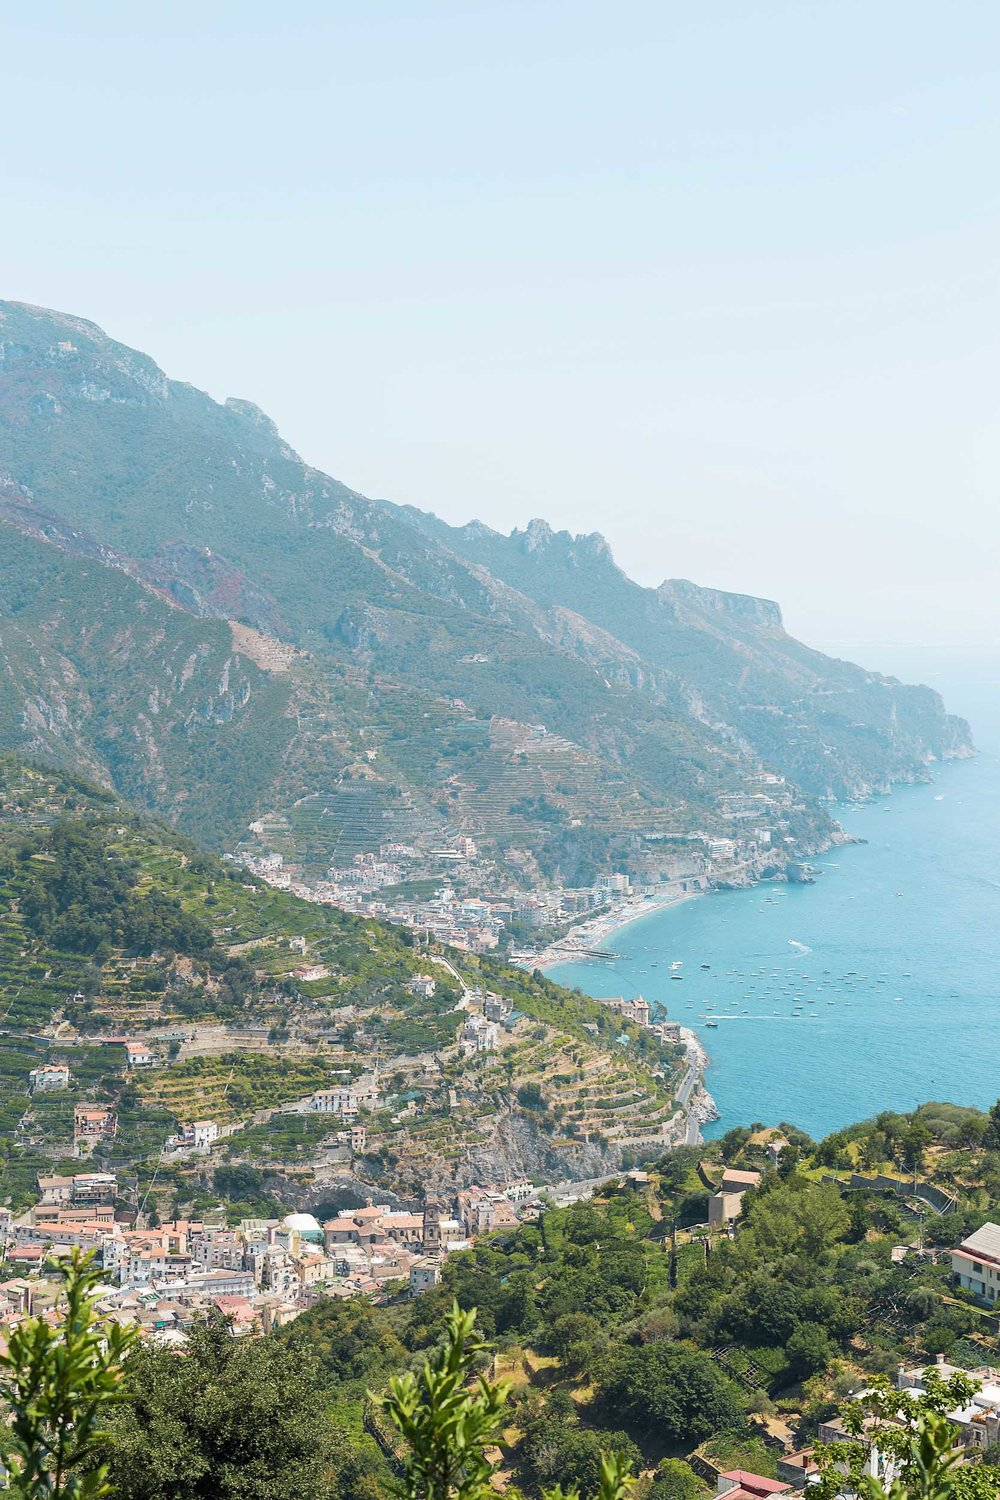 When visiting the Amalfi Coast, don't skip a scooter ride around the coast!